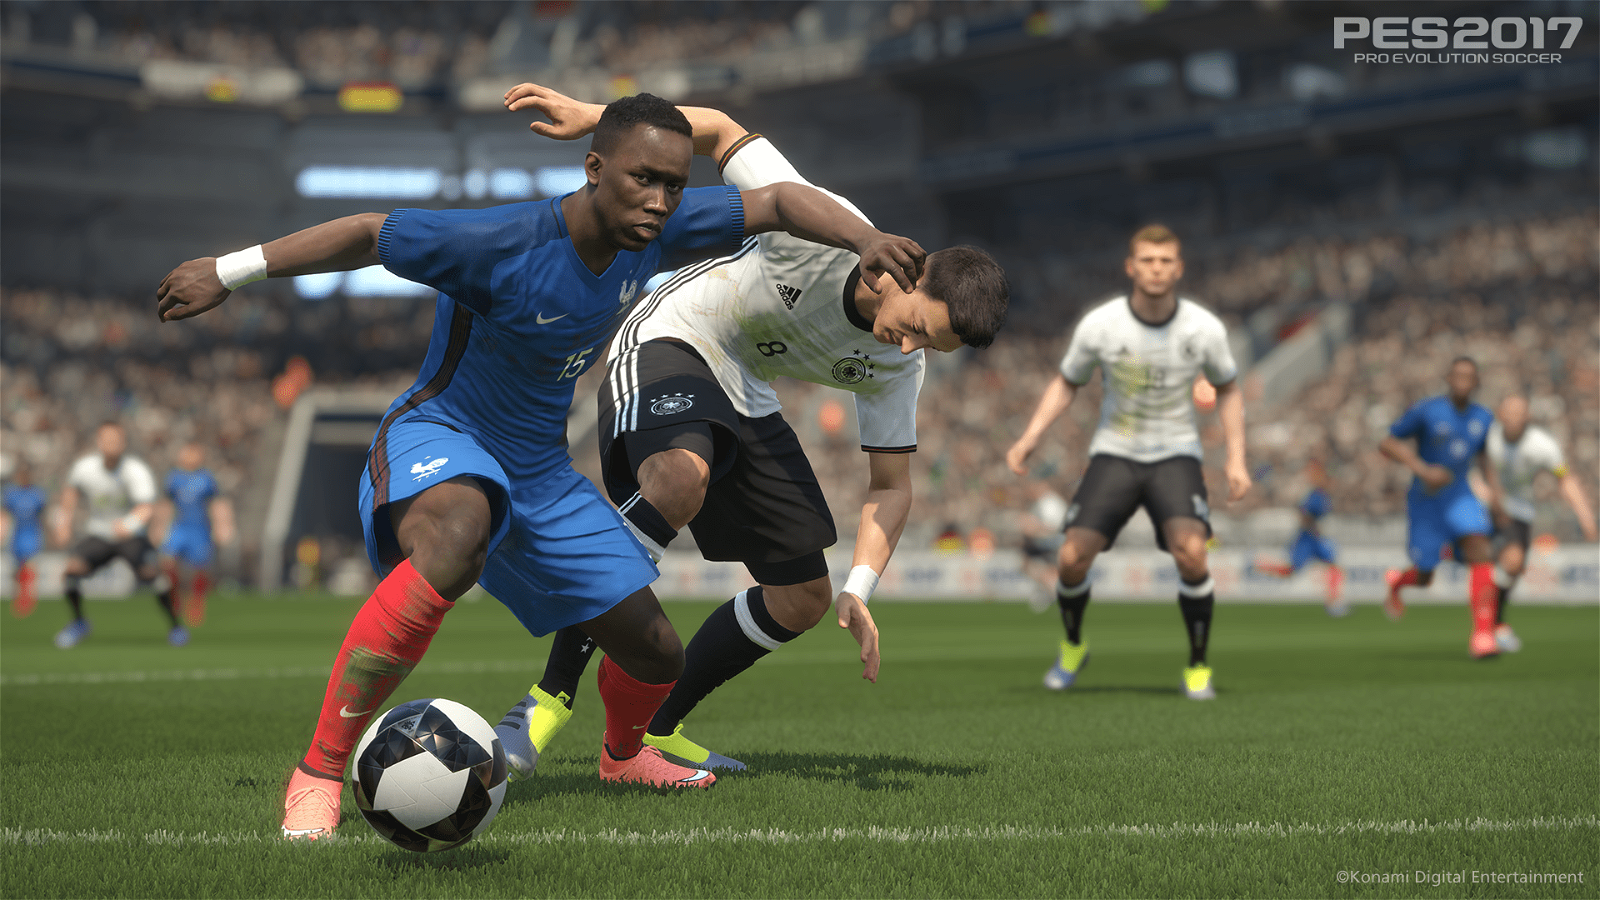 Pro Evolution Soccer 2017 (Ps4) Review 3